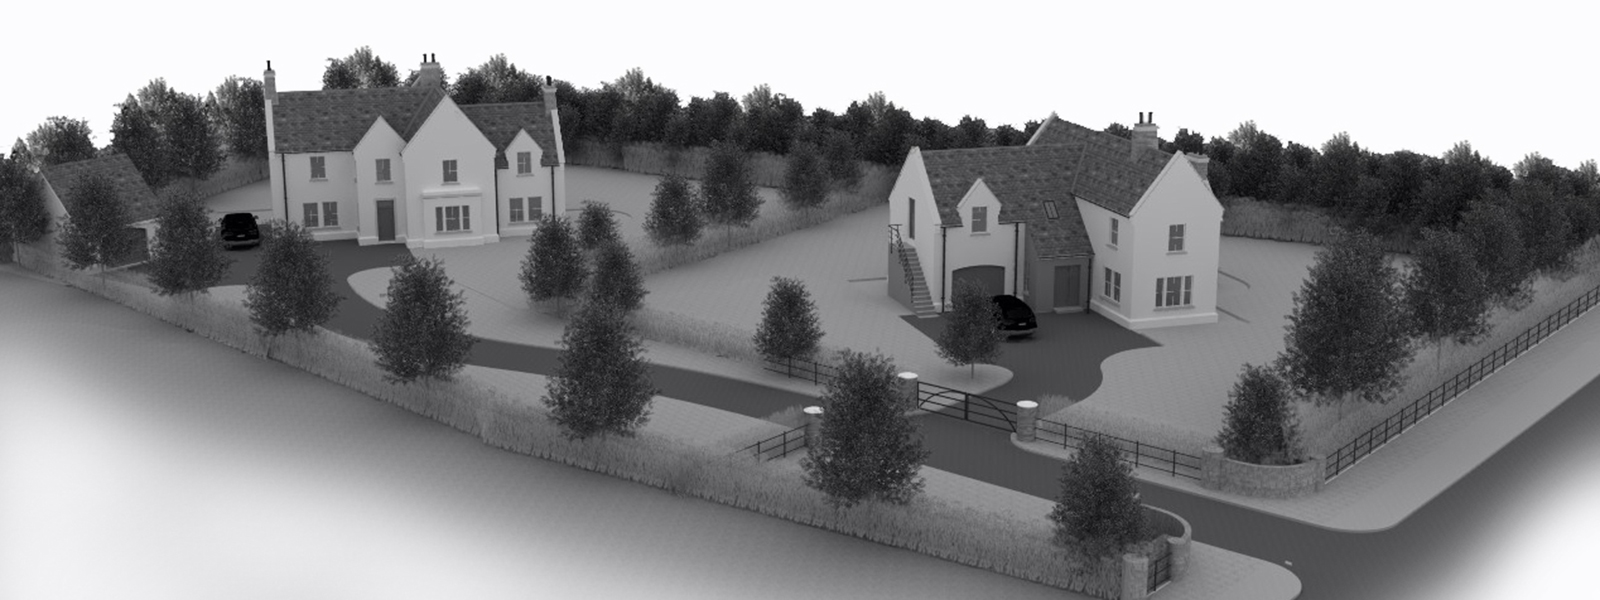 3d Model of Passive house Site Layout